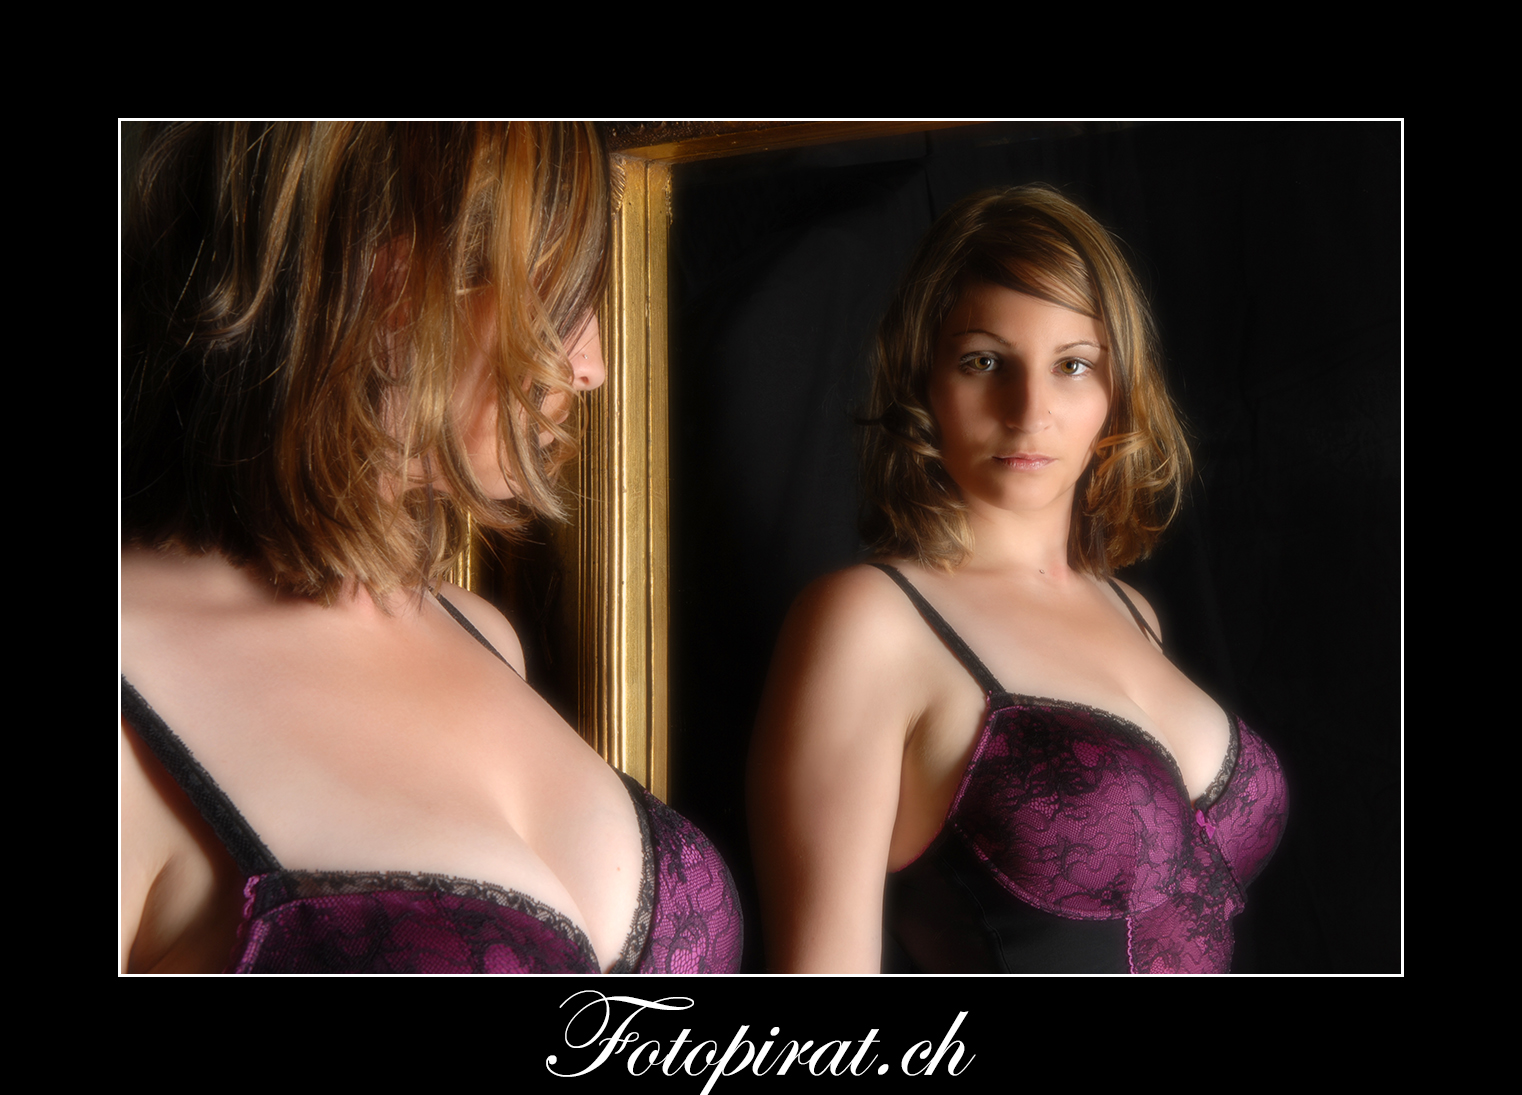 Fotoshooting, On Location, eyecatcher, Modelagentur, Sportmodel, Spiegel, Dessous, Fotomodel